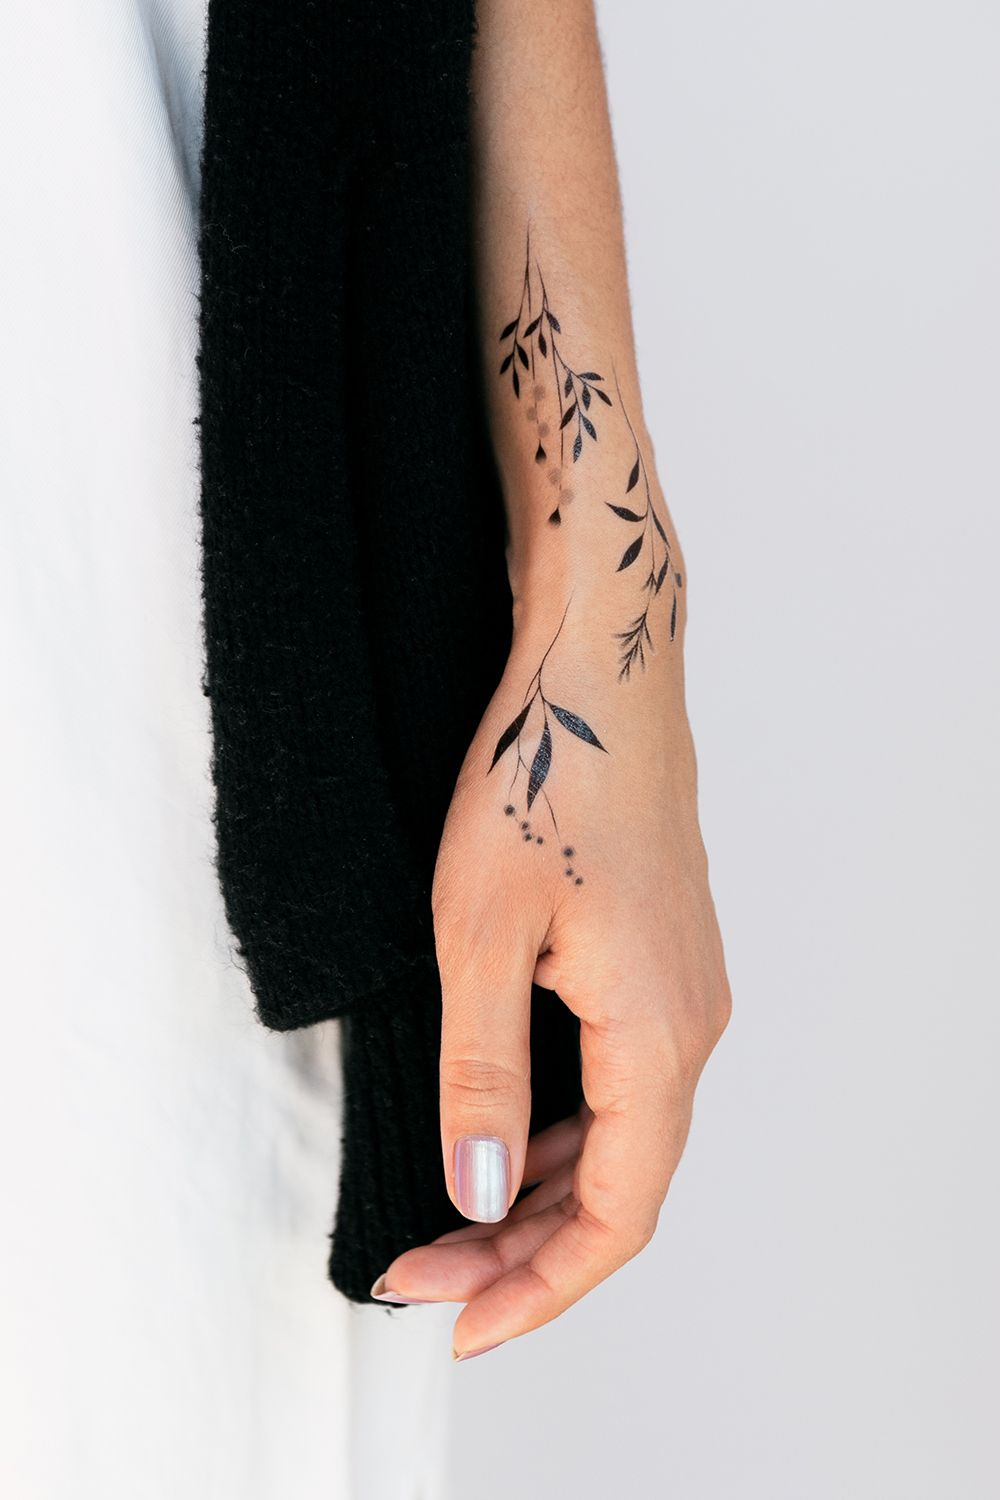 Botanicals Classy Tattoos Cool Wrist Tattoos Tattoos